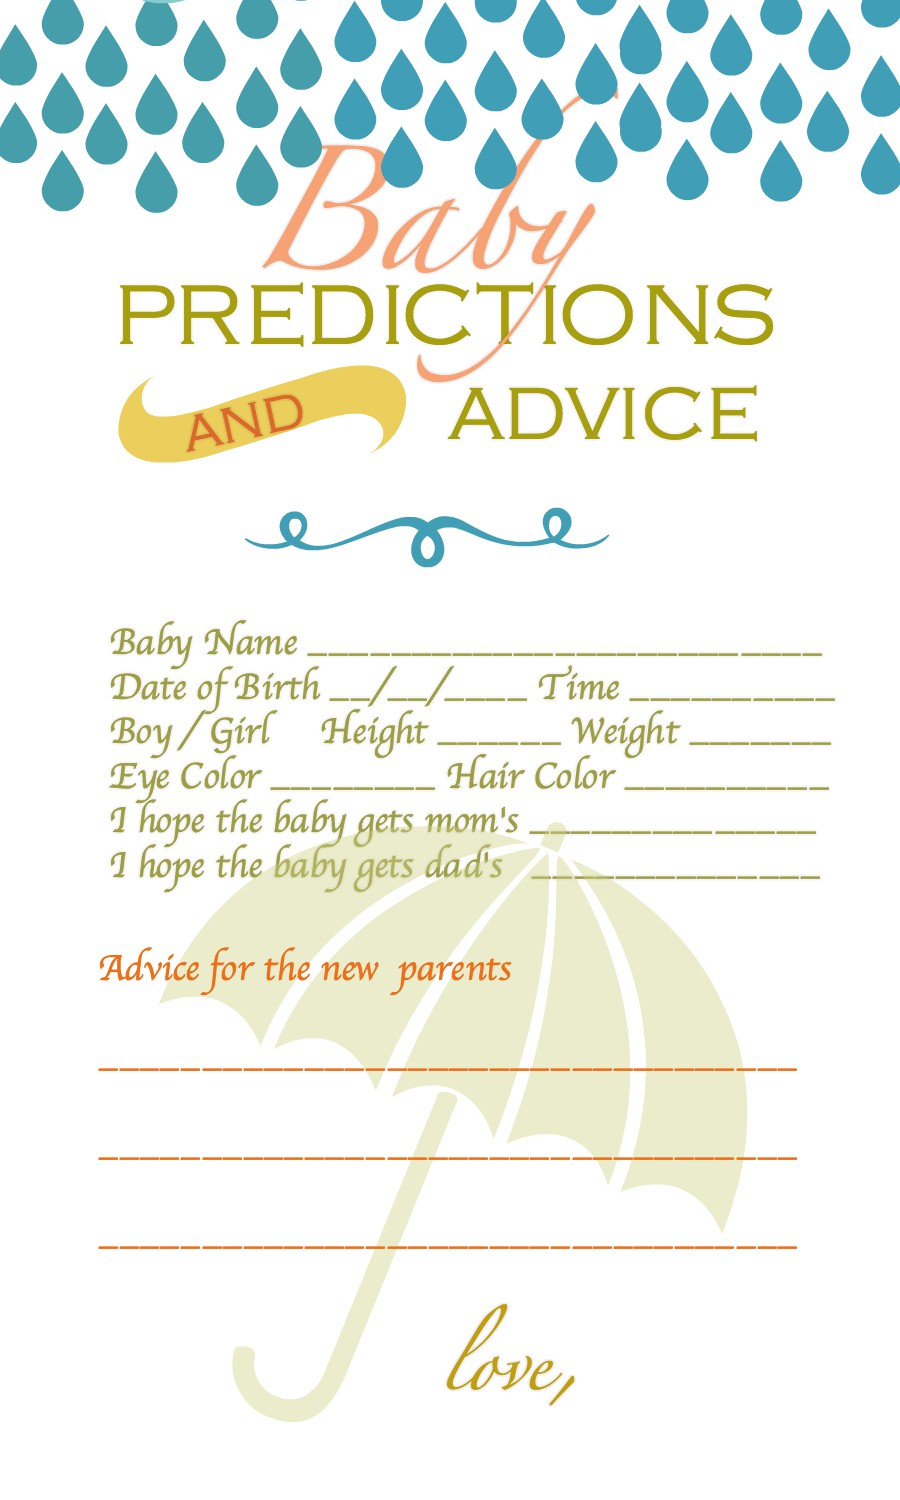 Baby Predictions and Advice